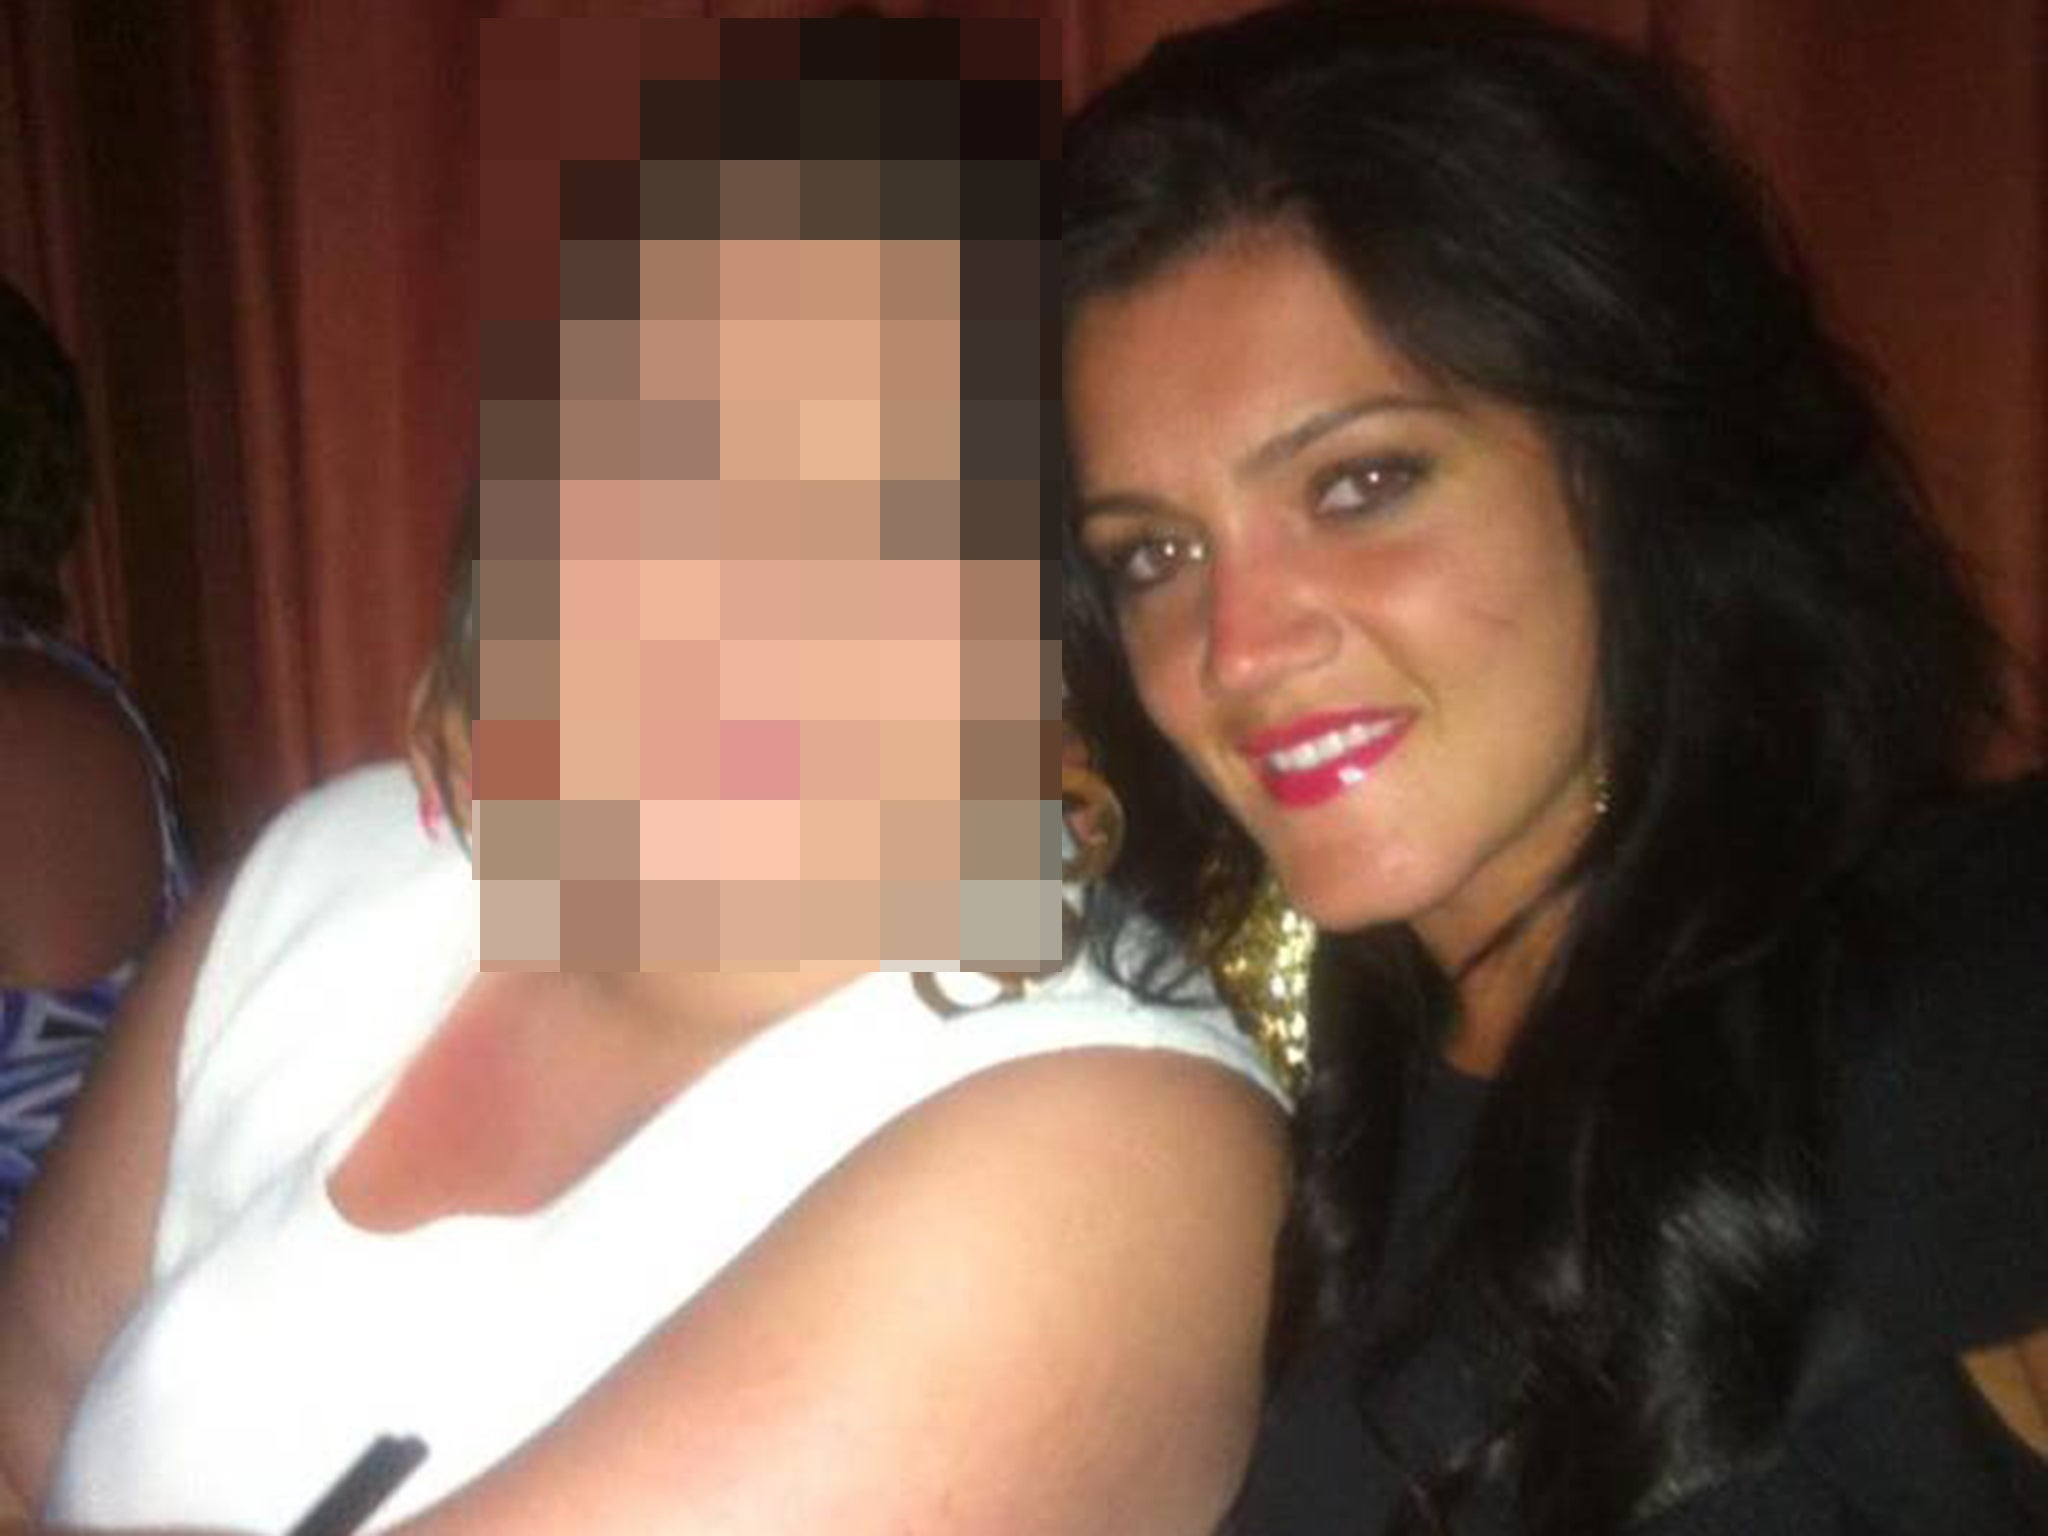 British woman died during 'Brazilian butt lift' operation after travelling to Turkey for surgery